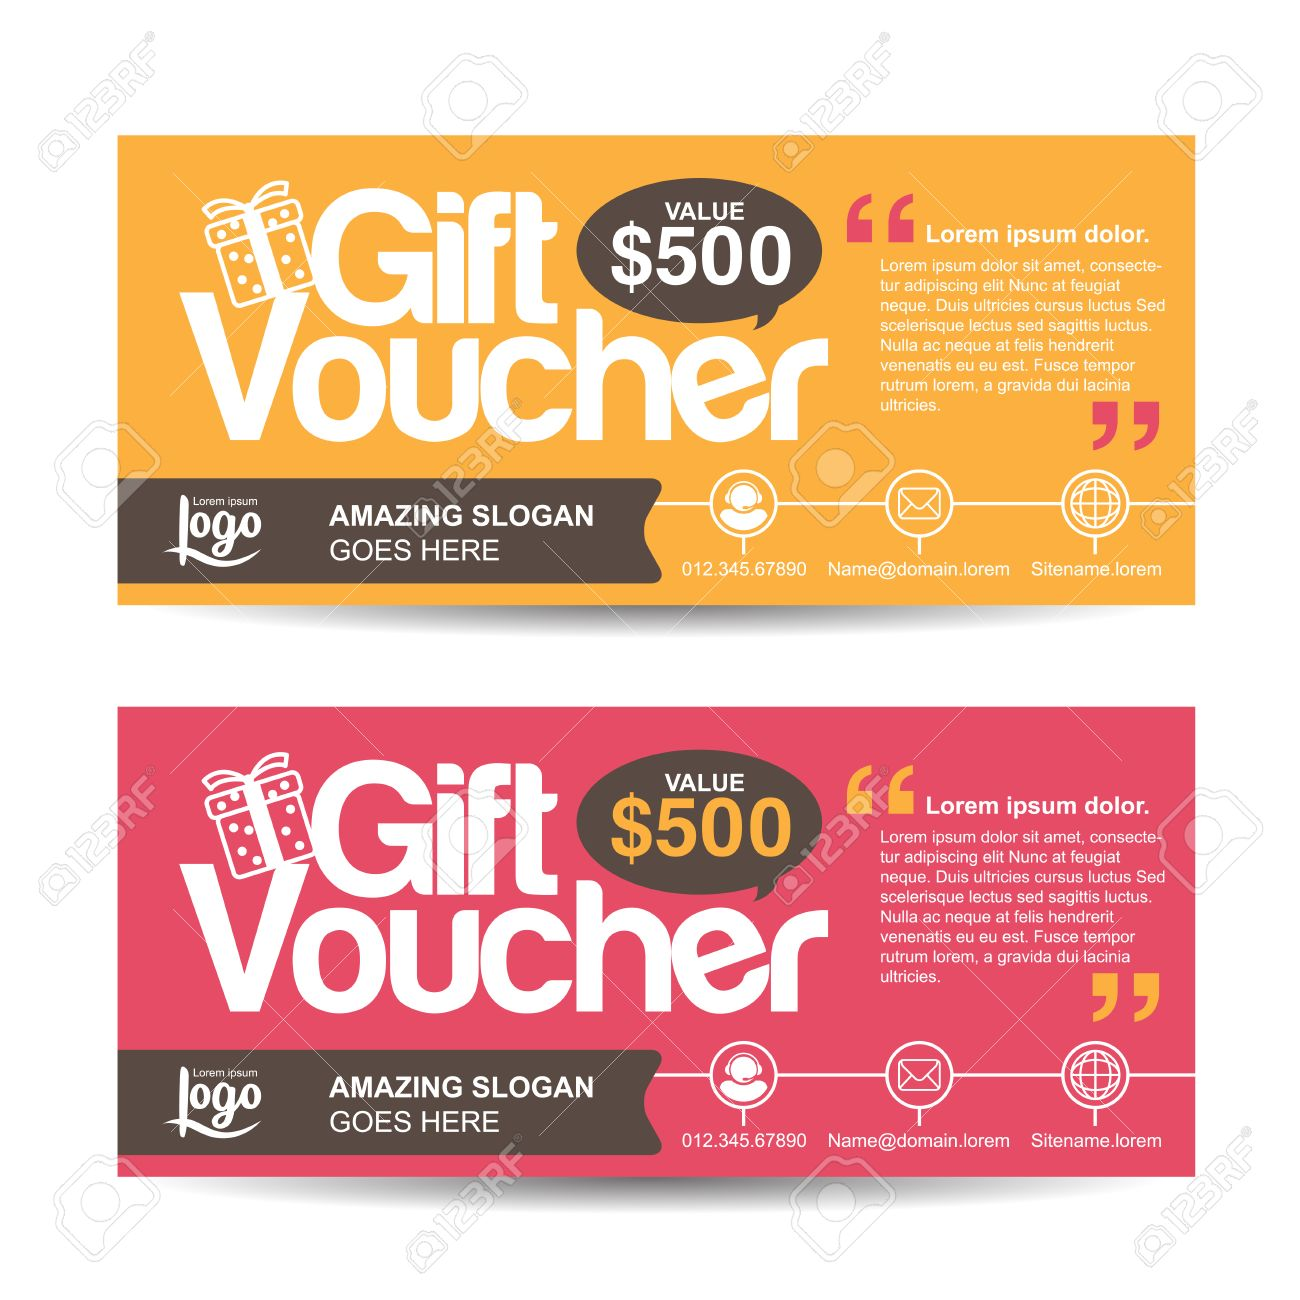 Gift Voucher Template With Colorful Patterncute Gift Voucher – Present Voucher Template